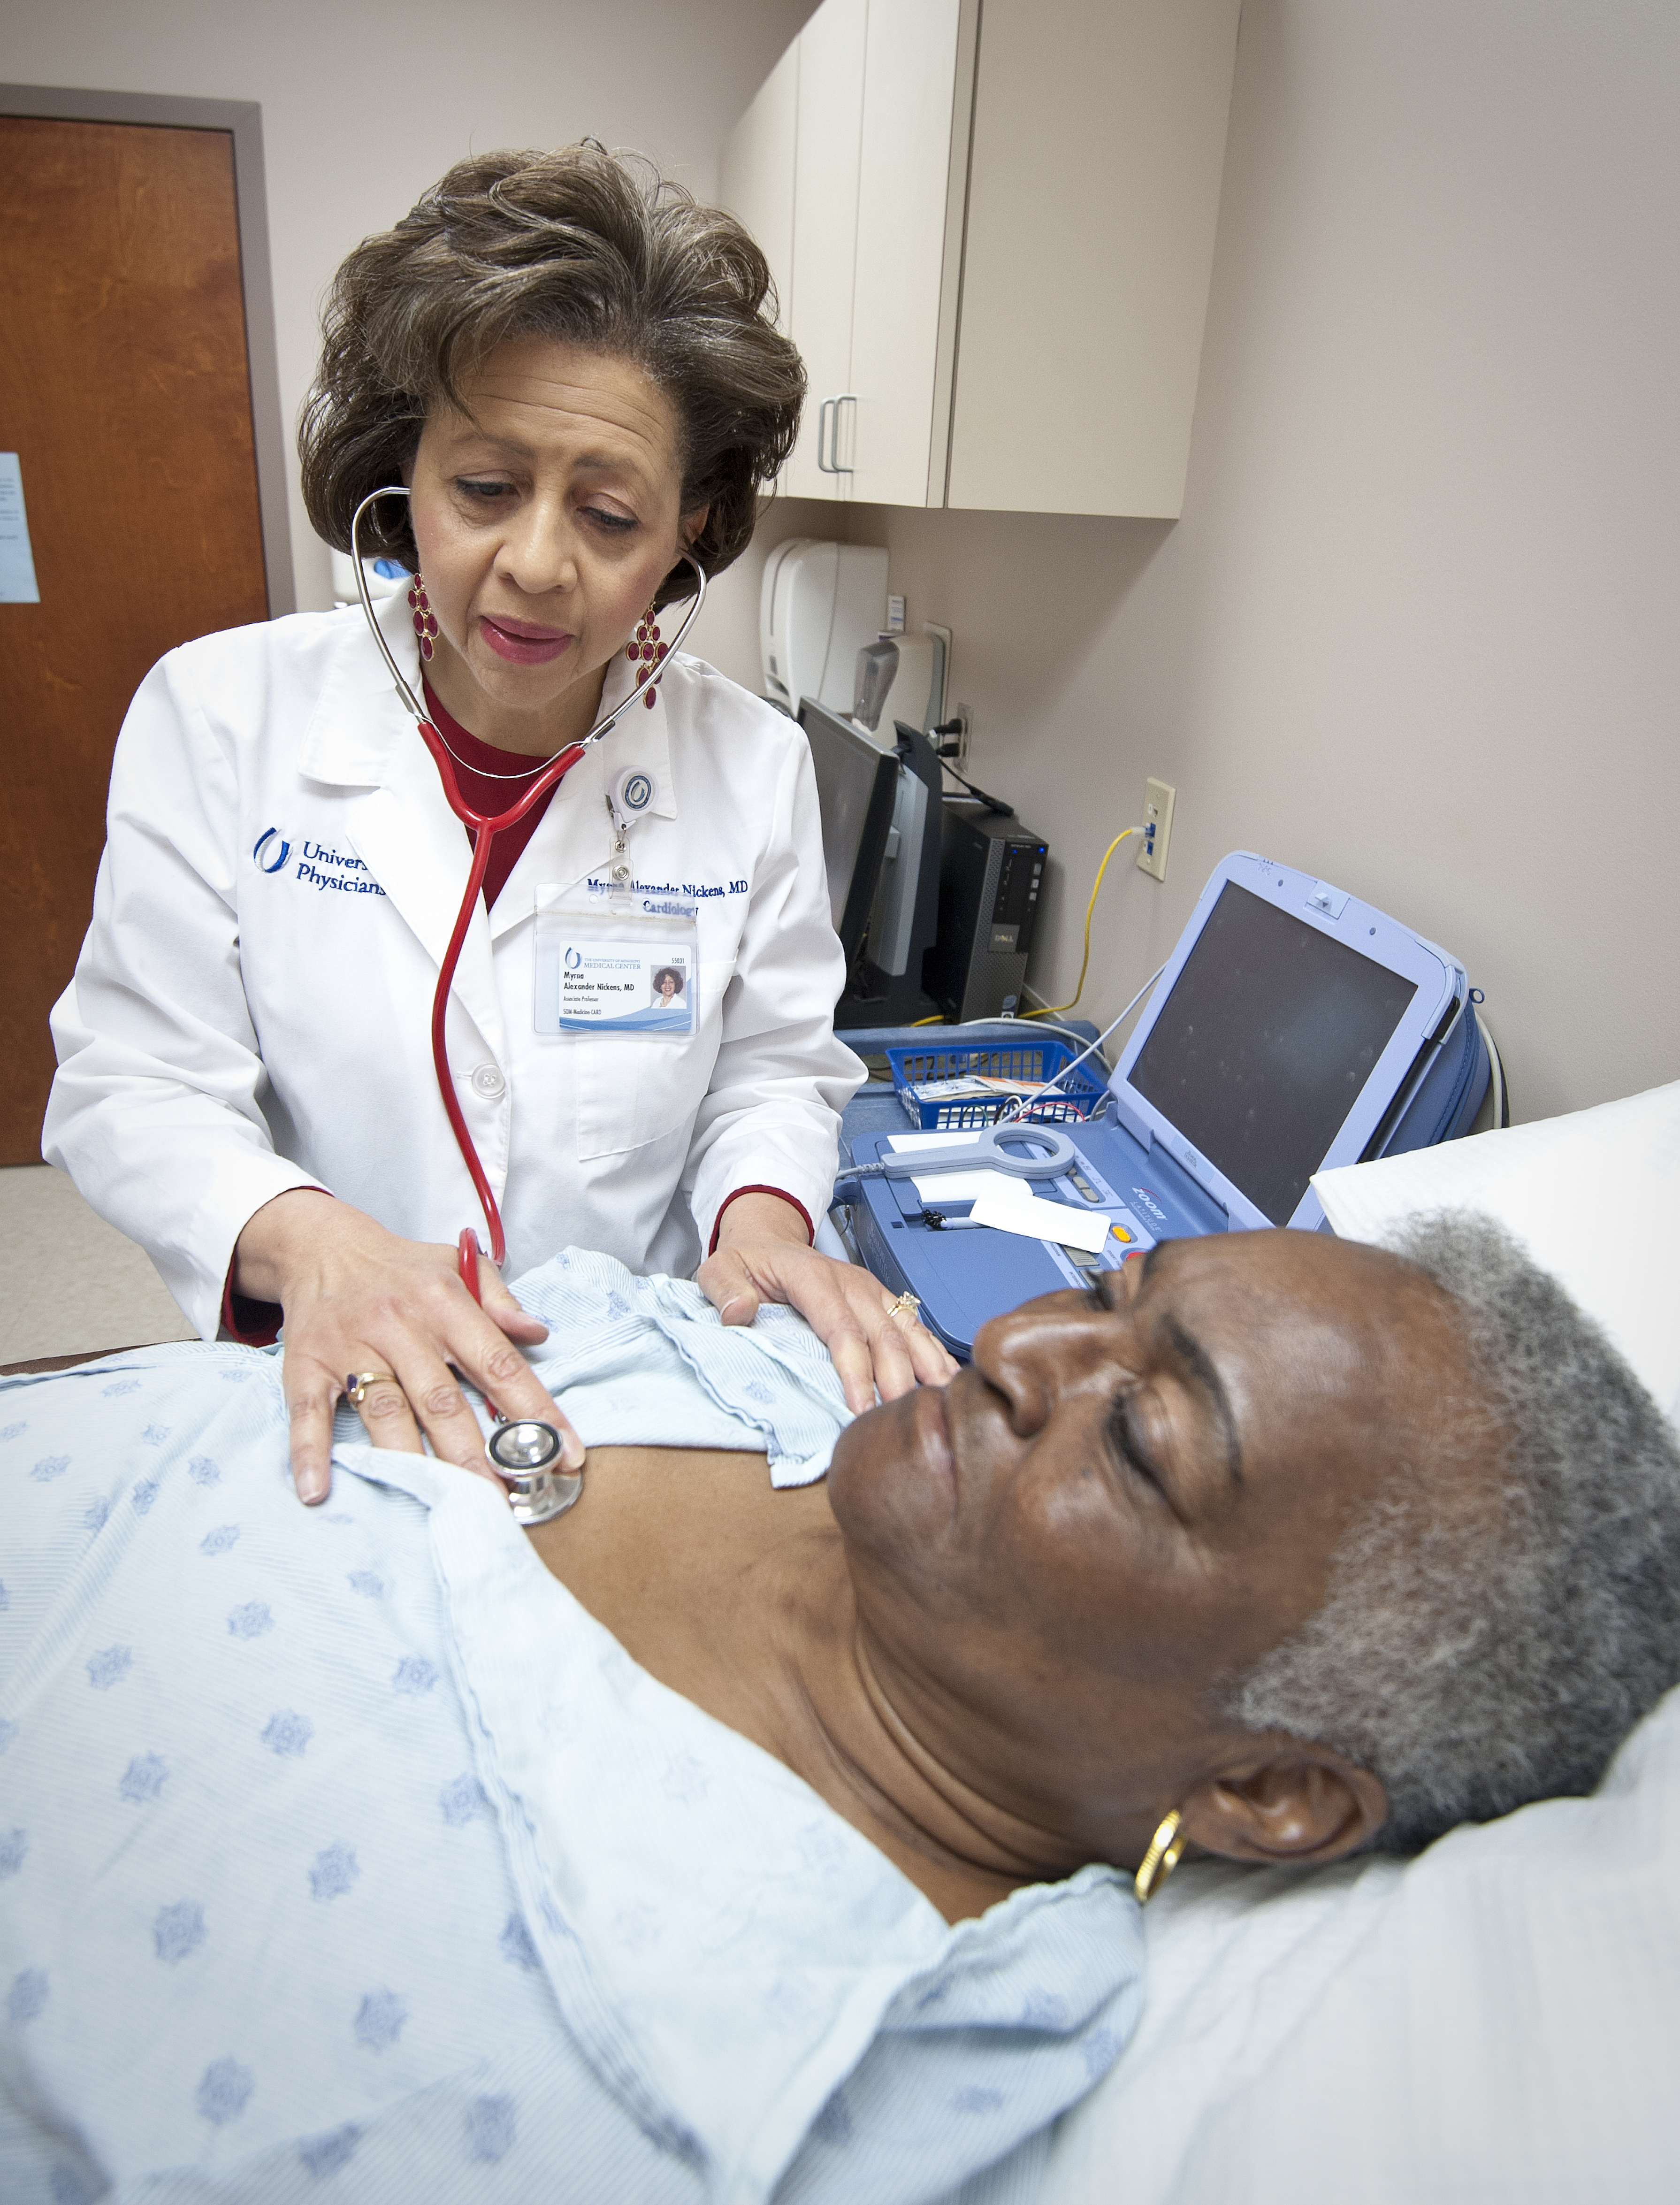 Dr. Myrna Alexander listens to the heart of Elizabeth Greer of Lexington